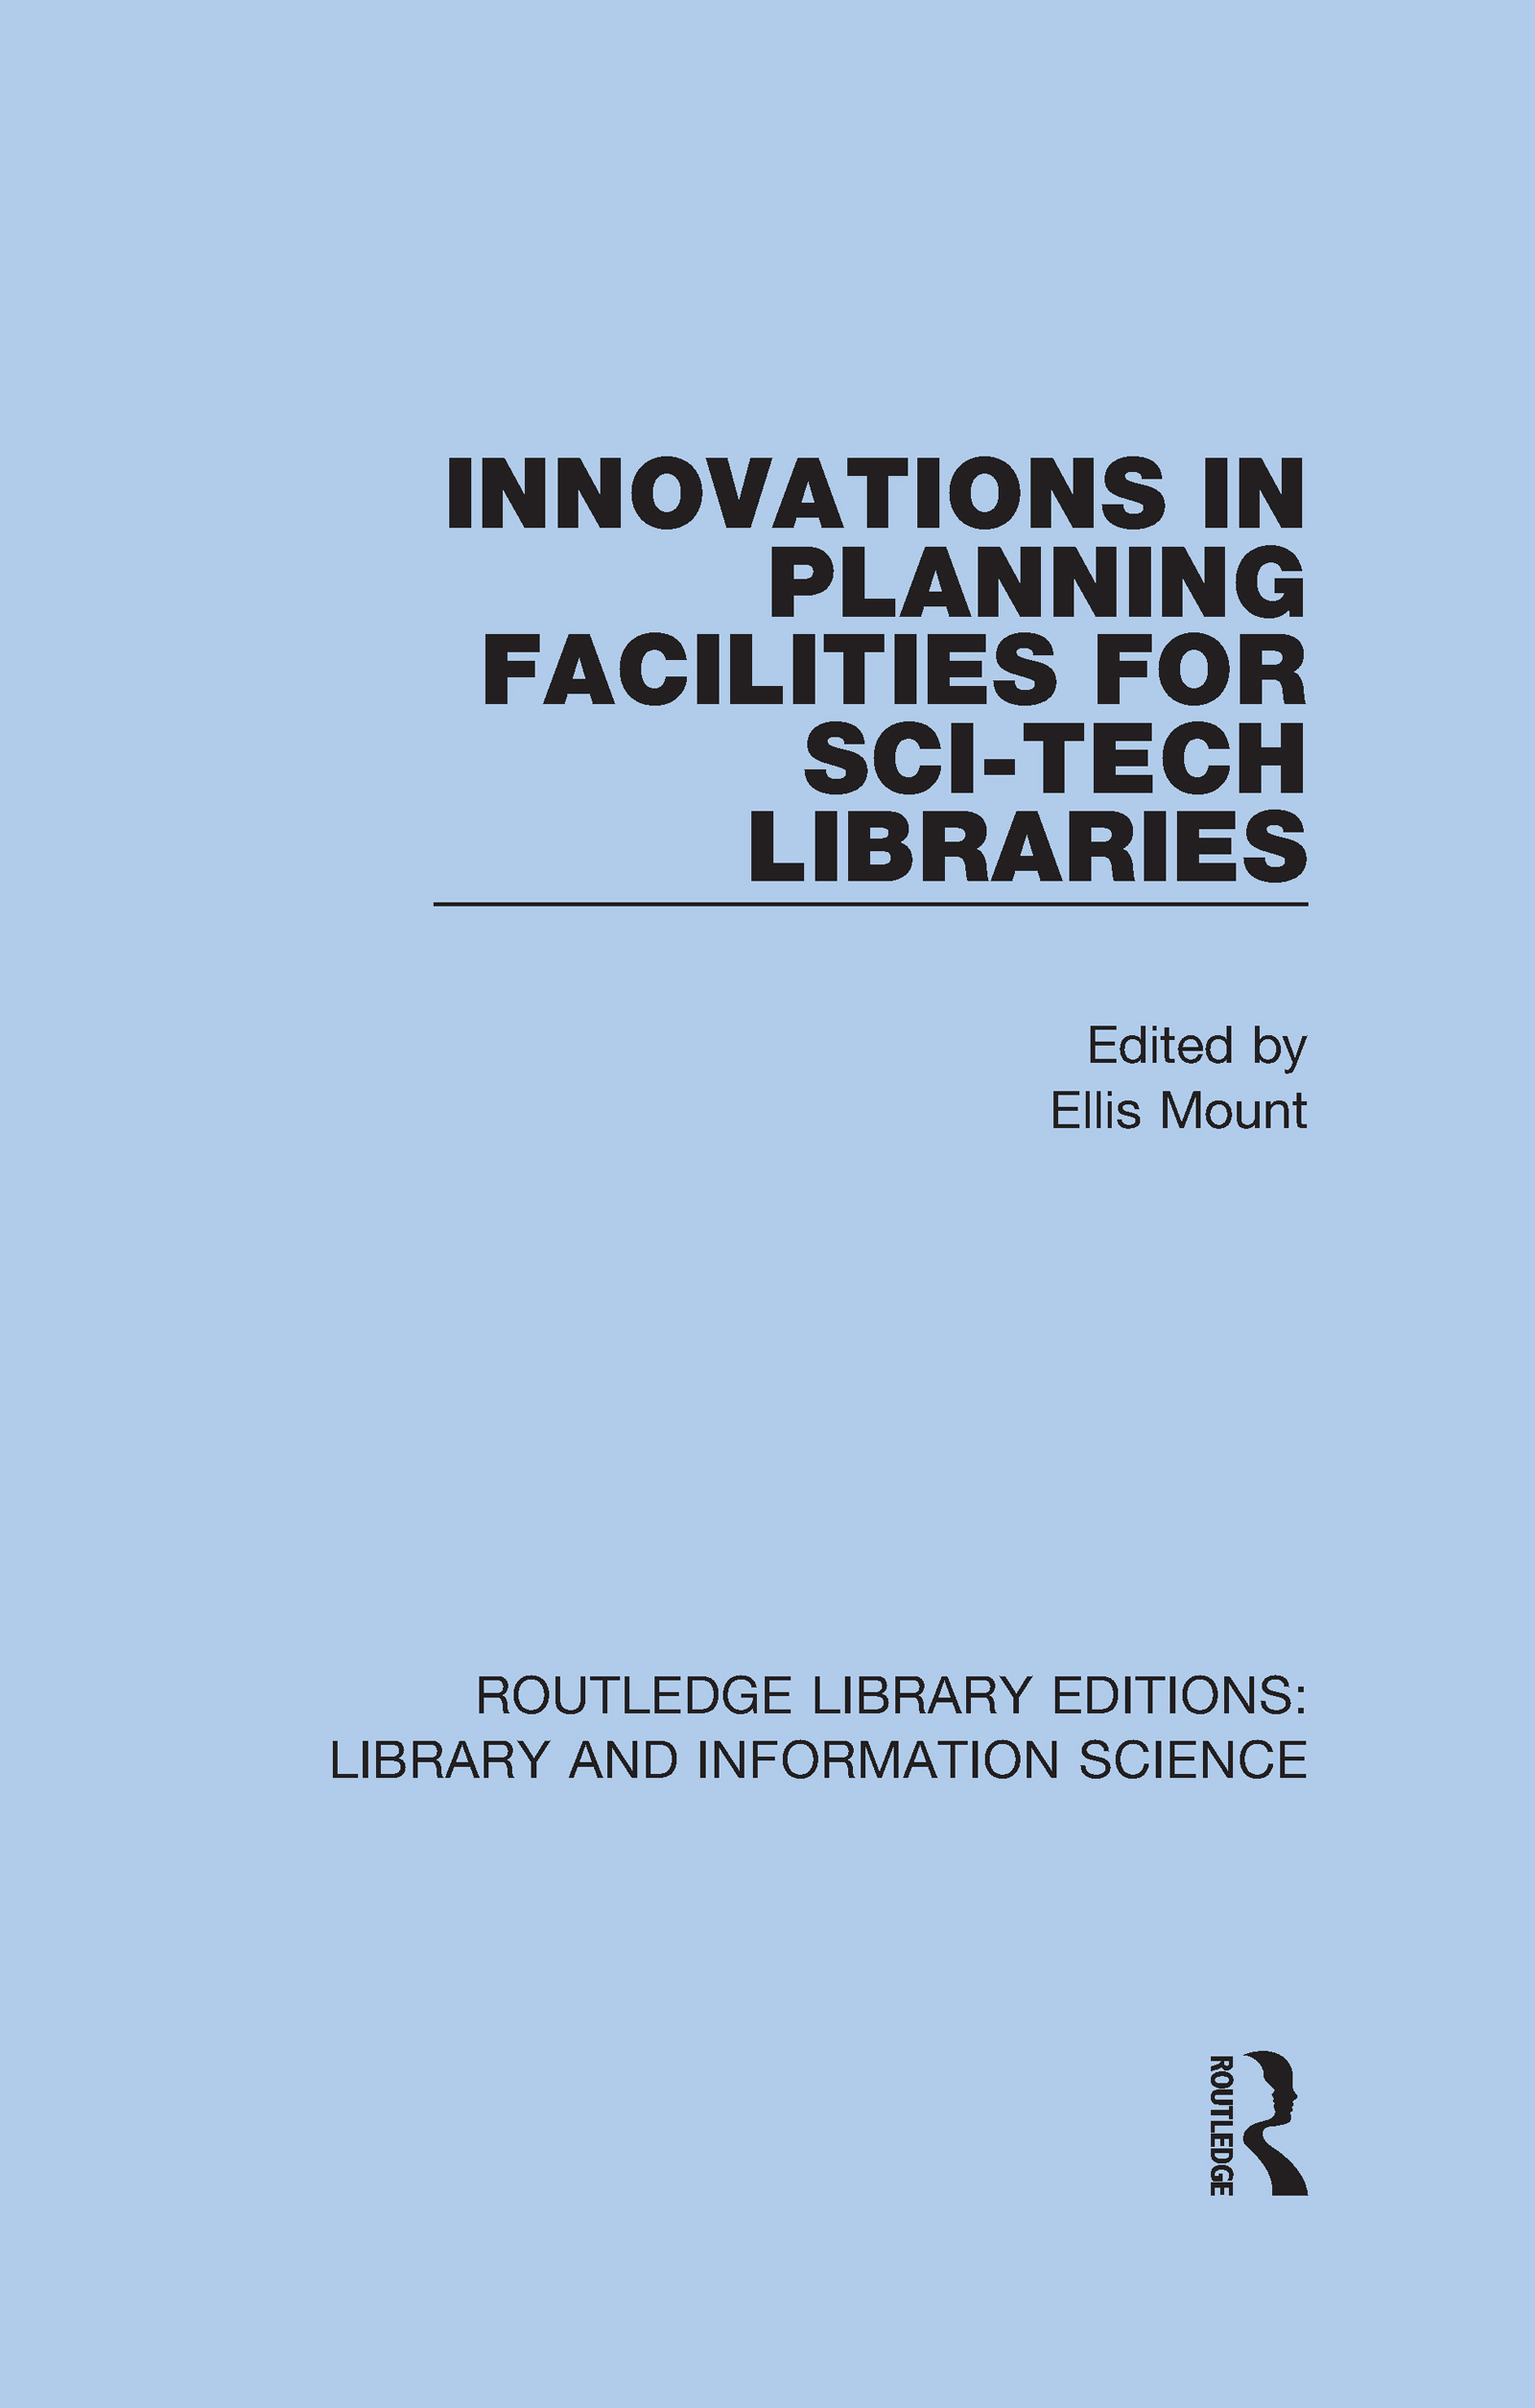 Innovations in Planning Facilities for Sci-Tech Libraries